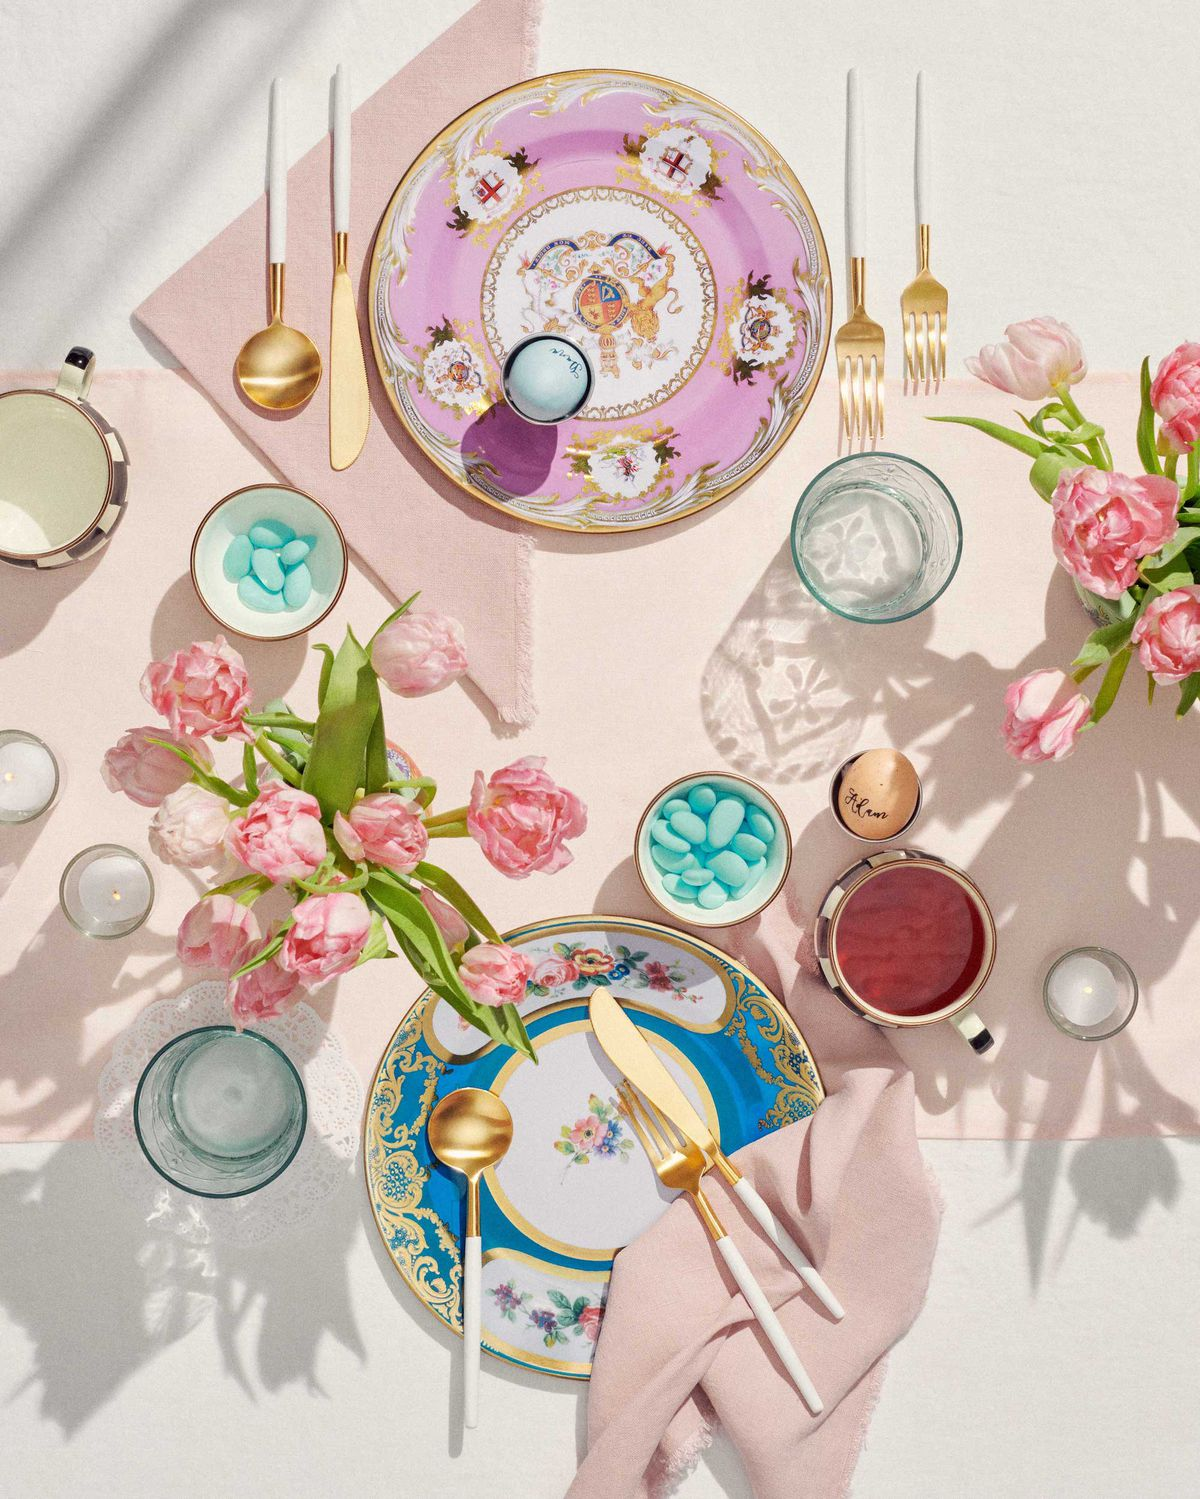 An overhead view of colorful plates with gold and white flatware.